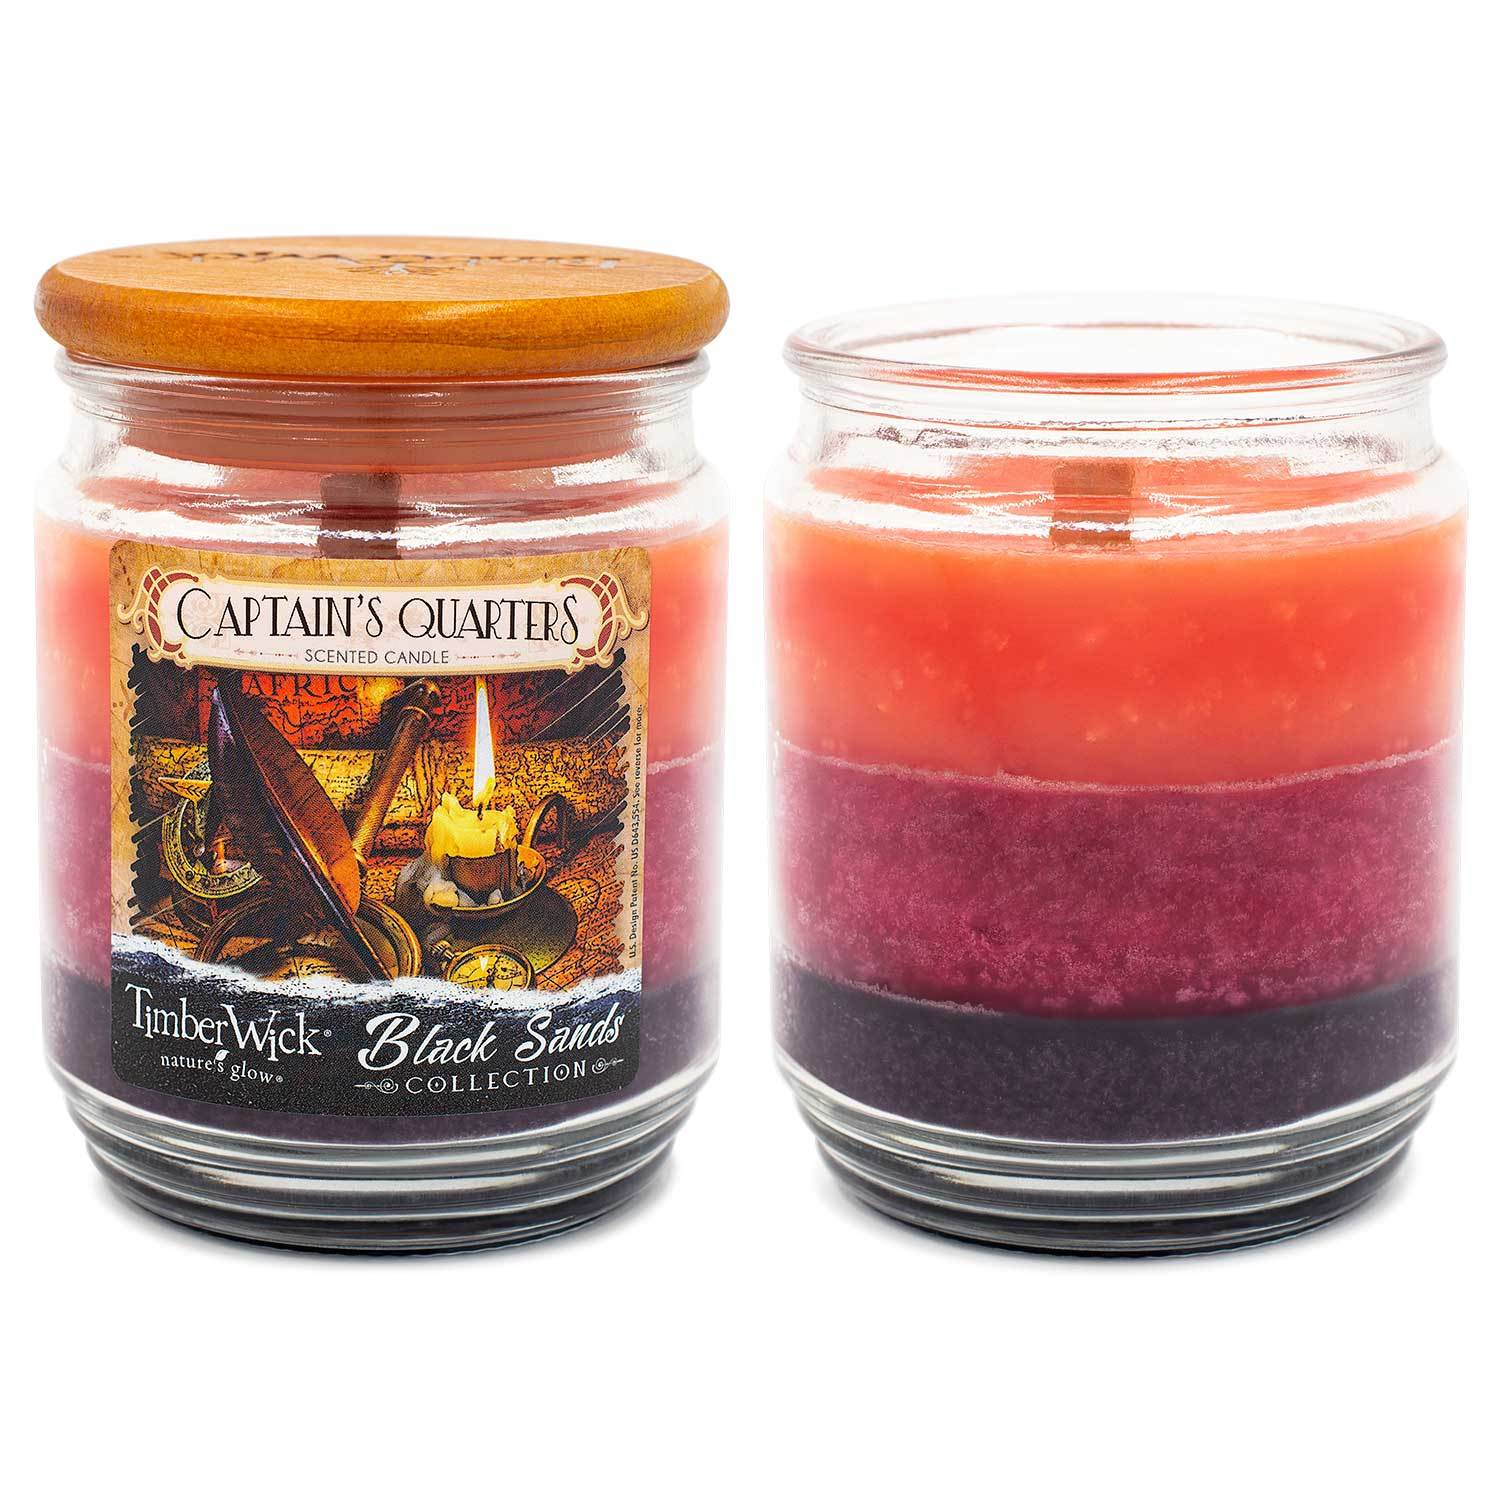 TimberWick Captain's Quarters Scented Mottled Candle